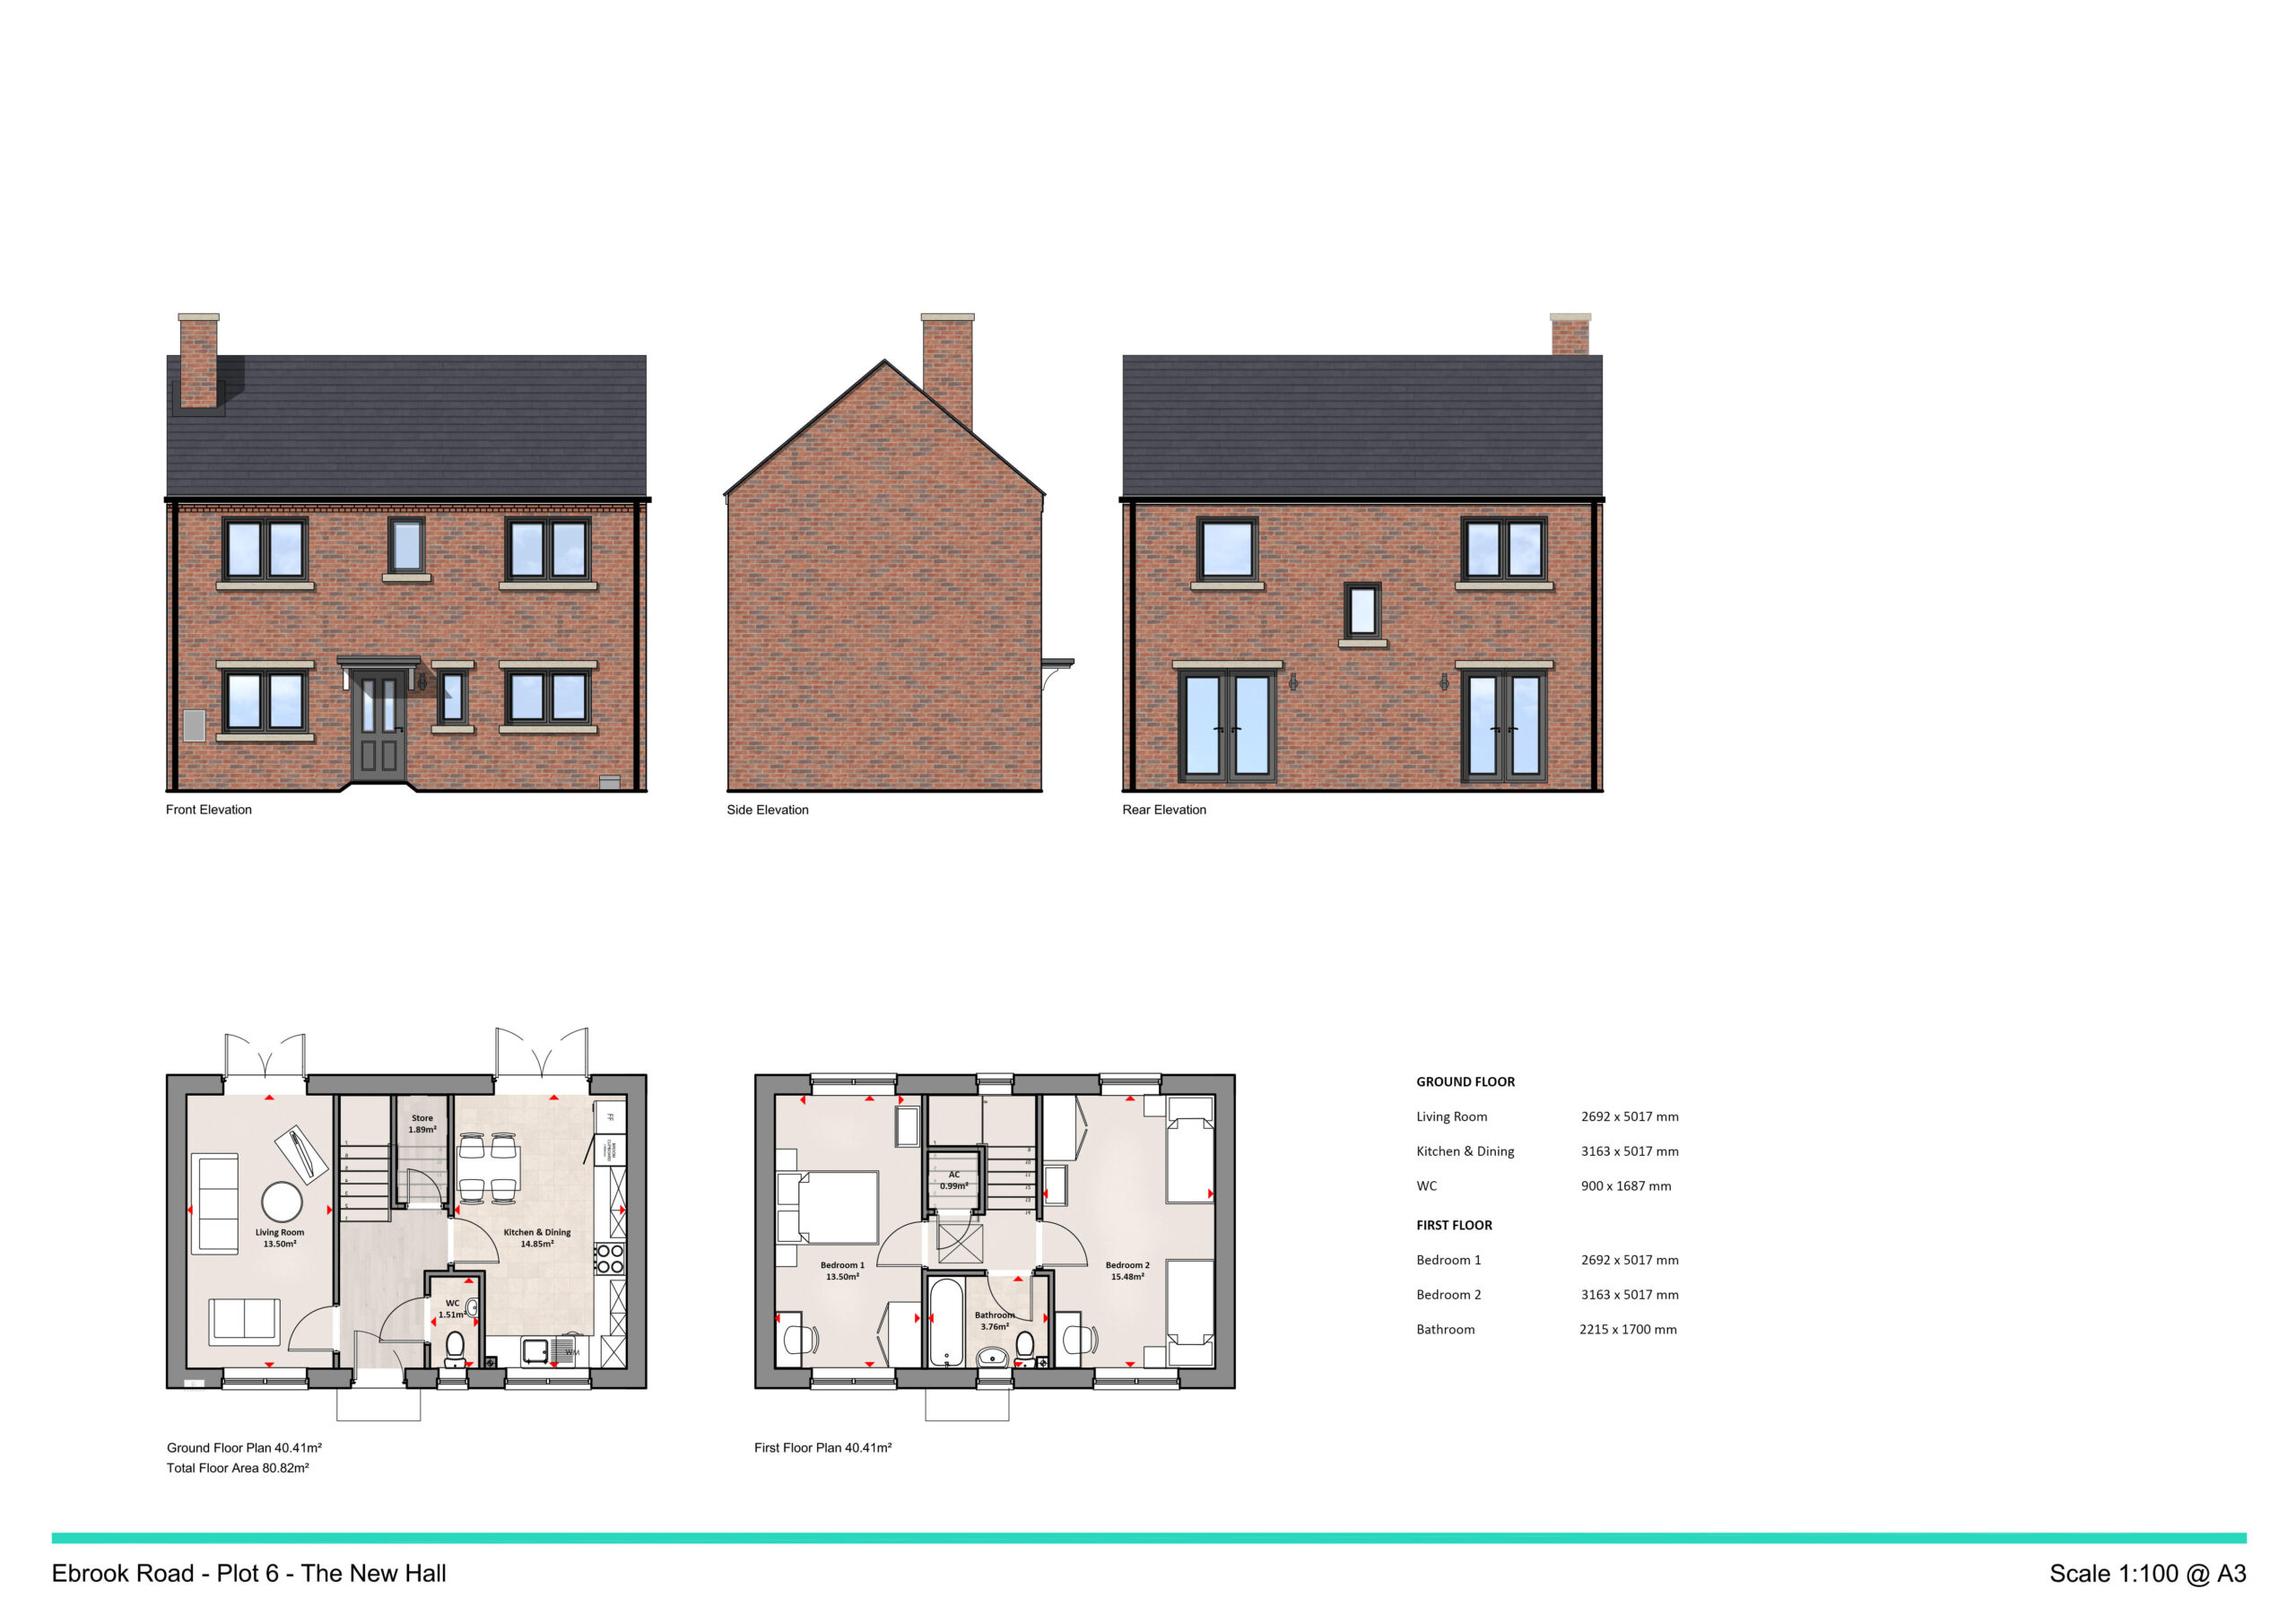 The New Hall is a 2 bed semi-detached property